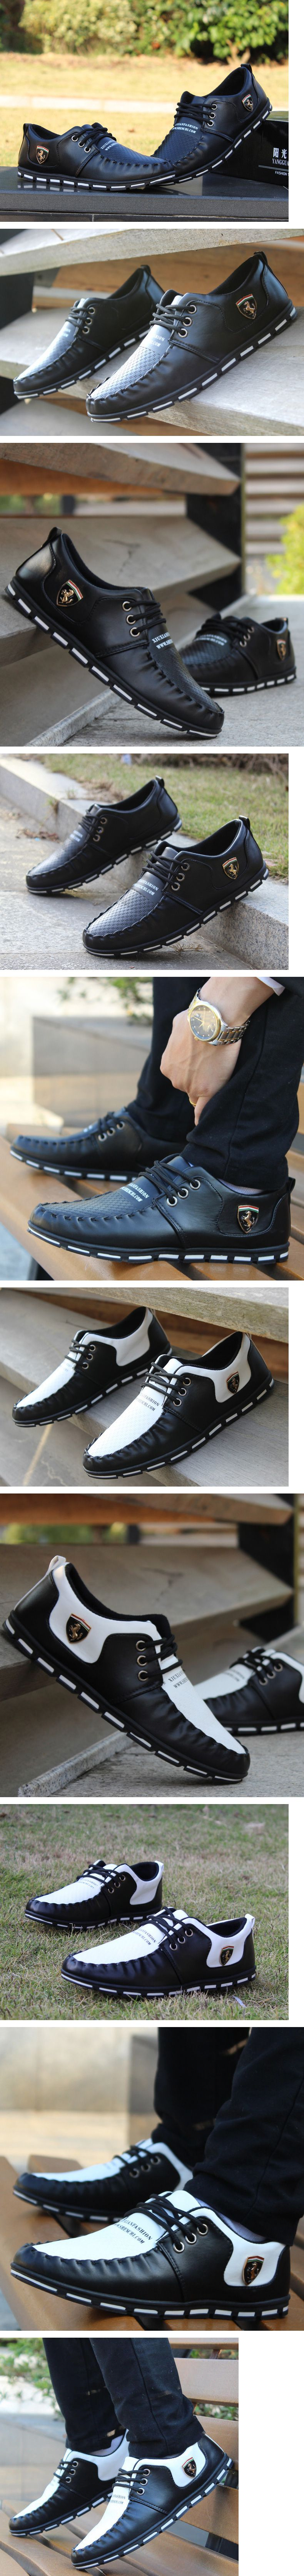 Wholesale Hot Slae FREE SHIPPING NEW MEN'S CASUAL SHOES LOAFERS LEATHER SHOES MEN DRIVING SHOES SIZE 38-45